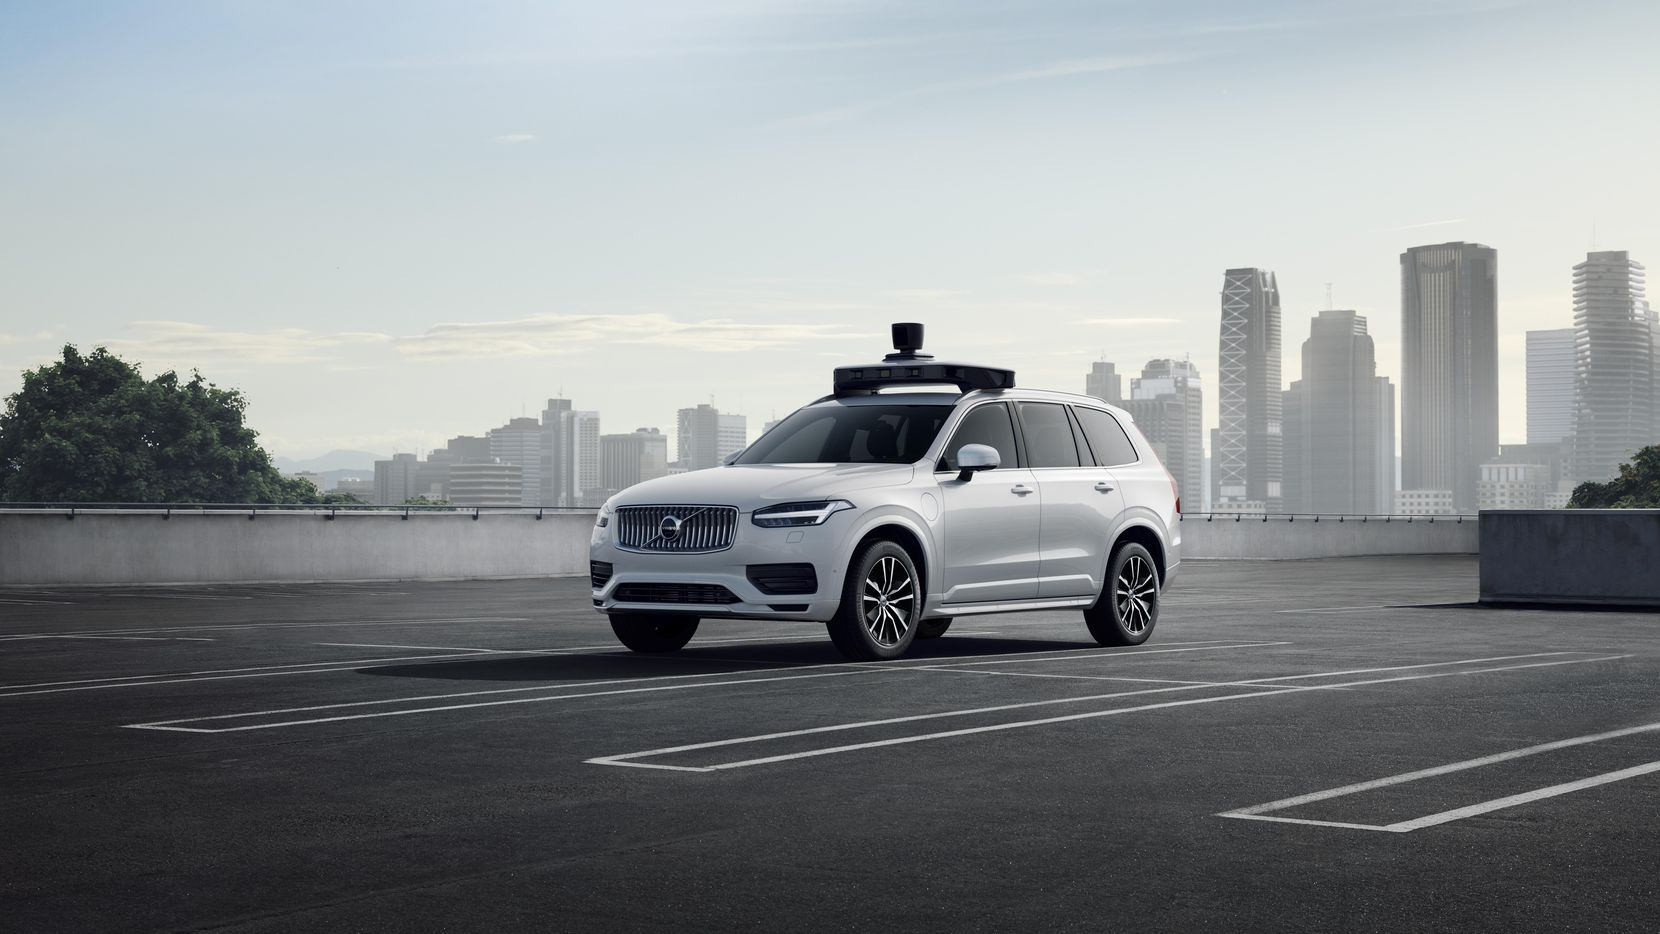 Uber's white Volvo SUVs will start mapping downtown Dallas streets this fall to understand how self-driving cars would safely navigate the city's roadways. If the data collection goes smoothly, company officials say it may test autonomous vehicles.